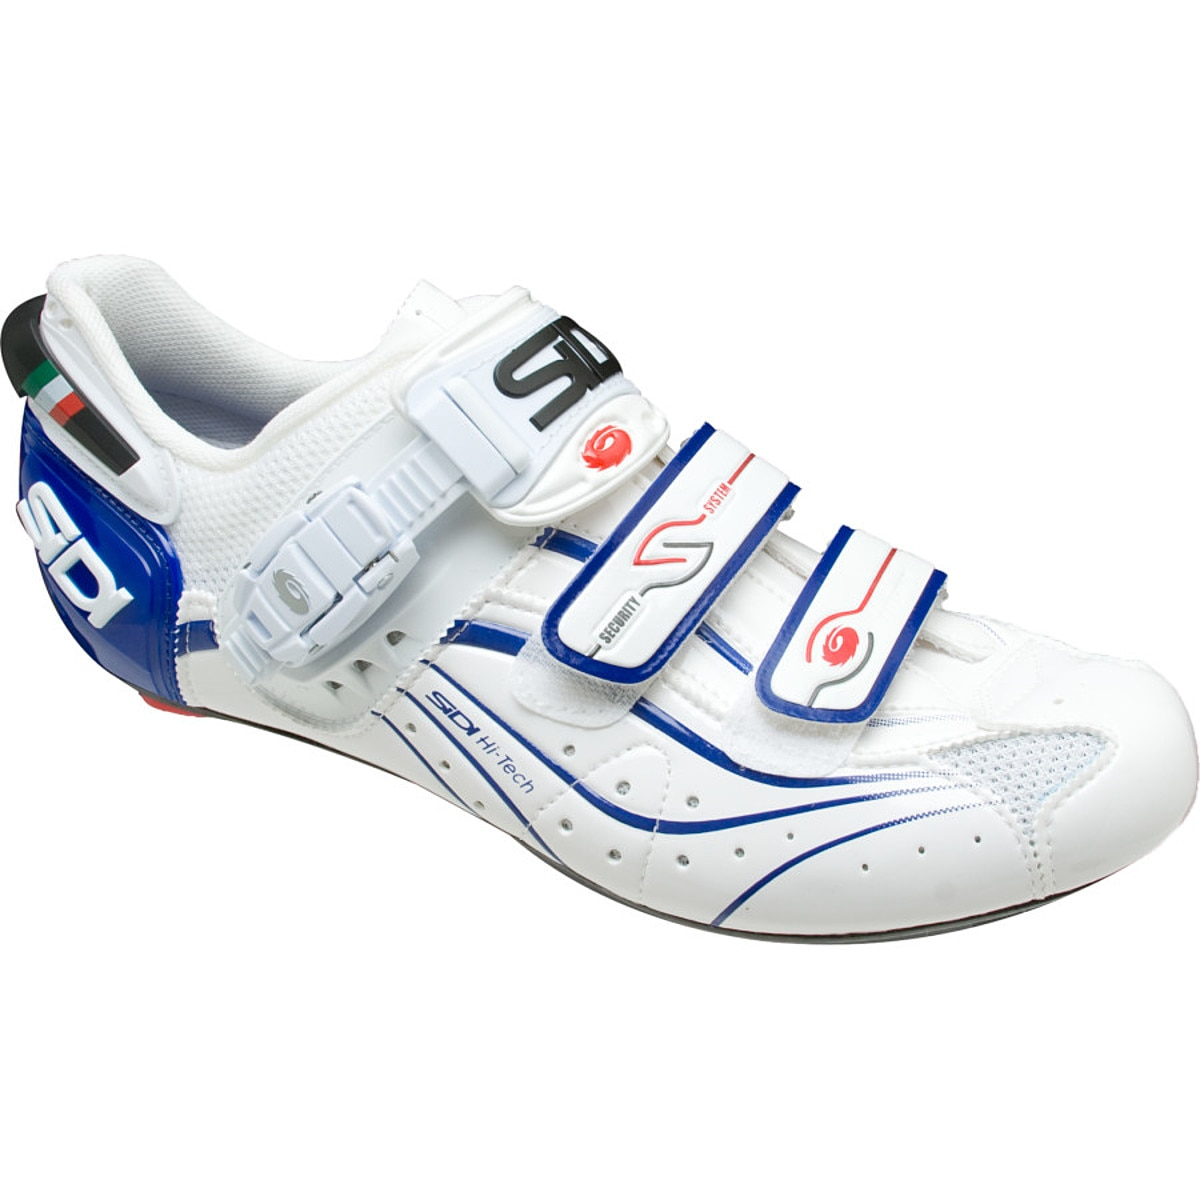 sidi genius 6 6 carbon lite shoe women 39 s competitive cyclist. Black Bedroom Furniture Sets. Home Design Ideas